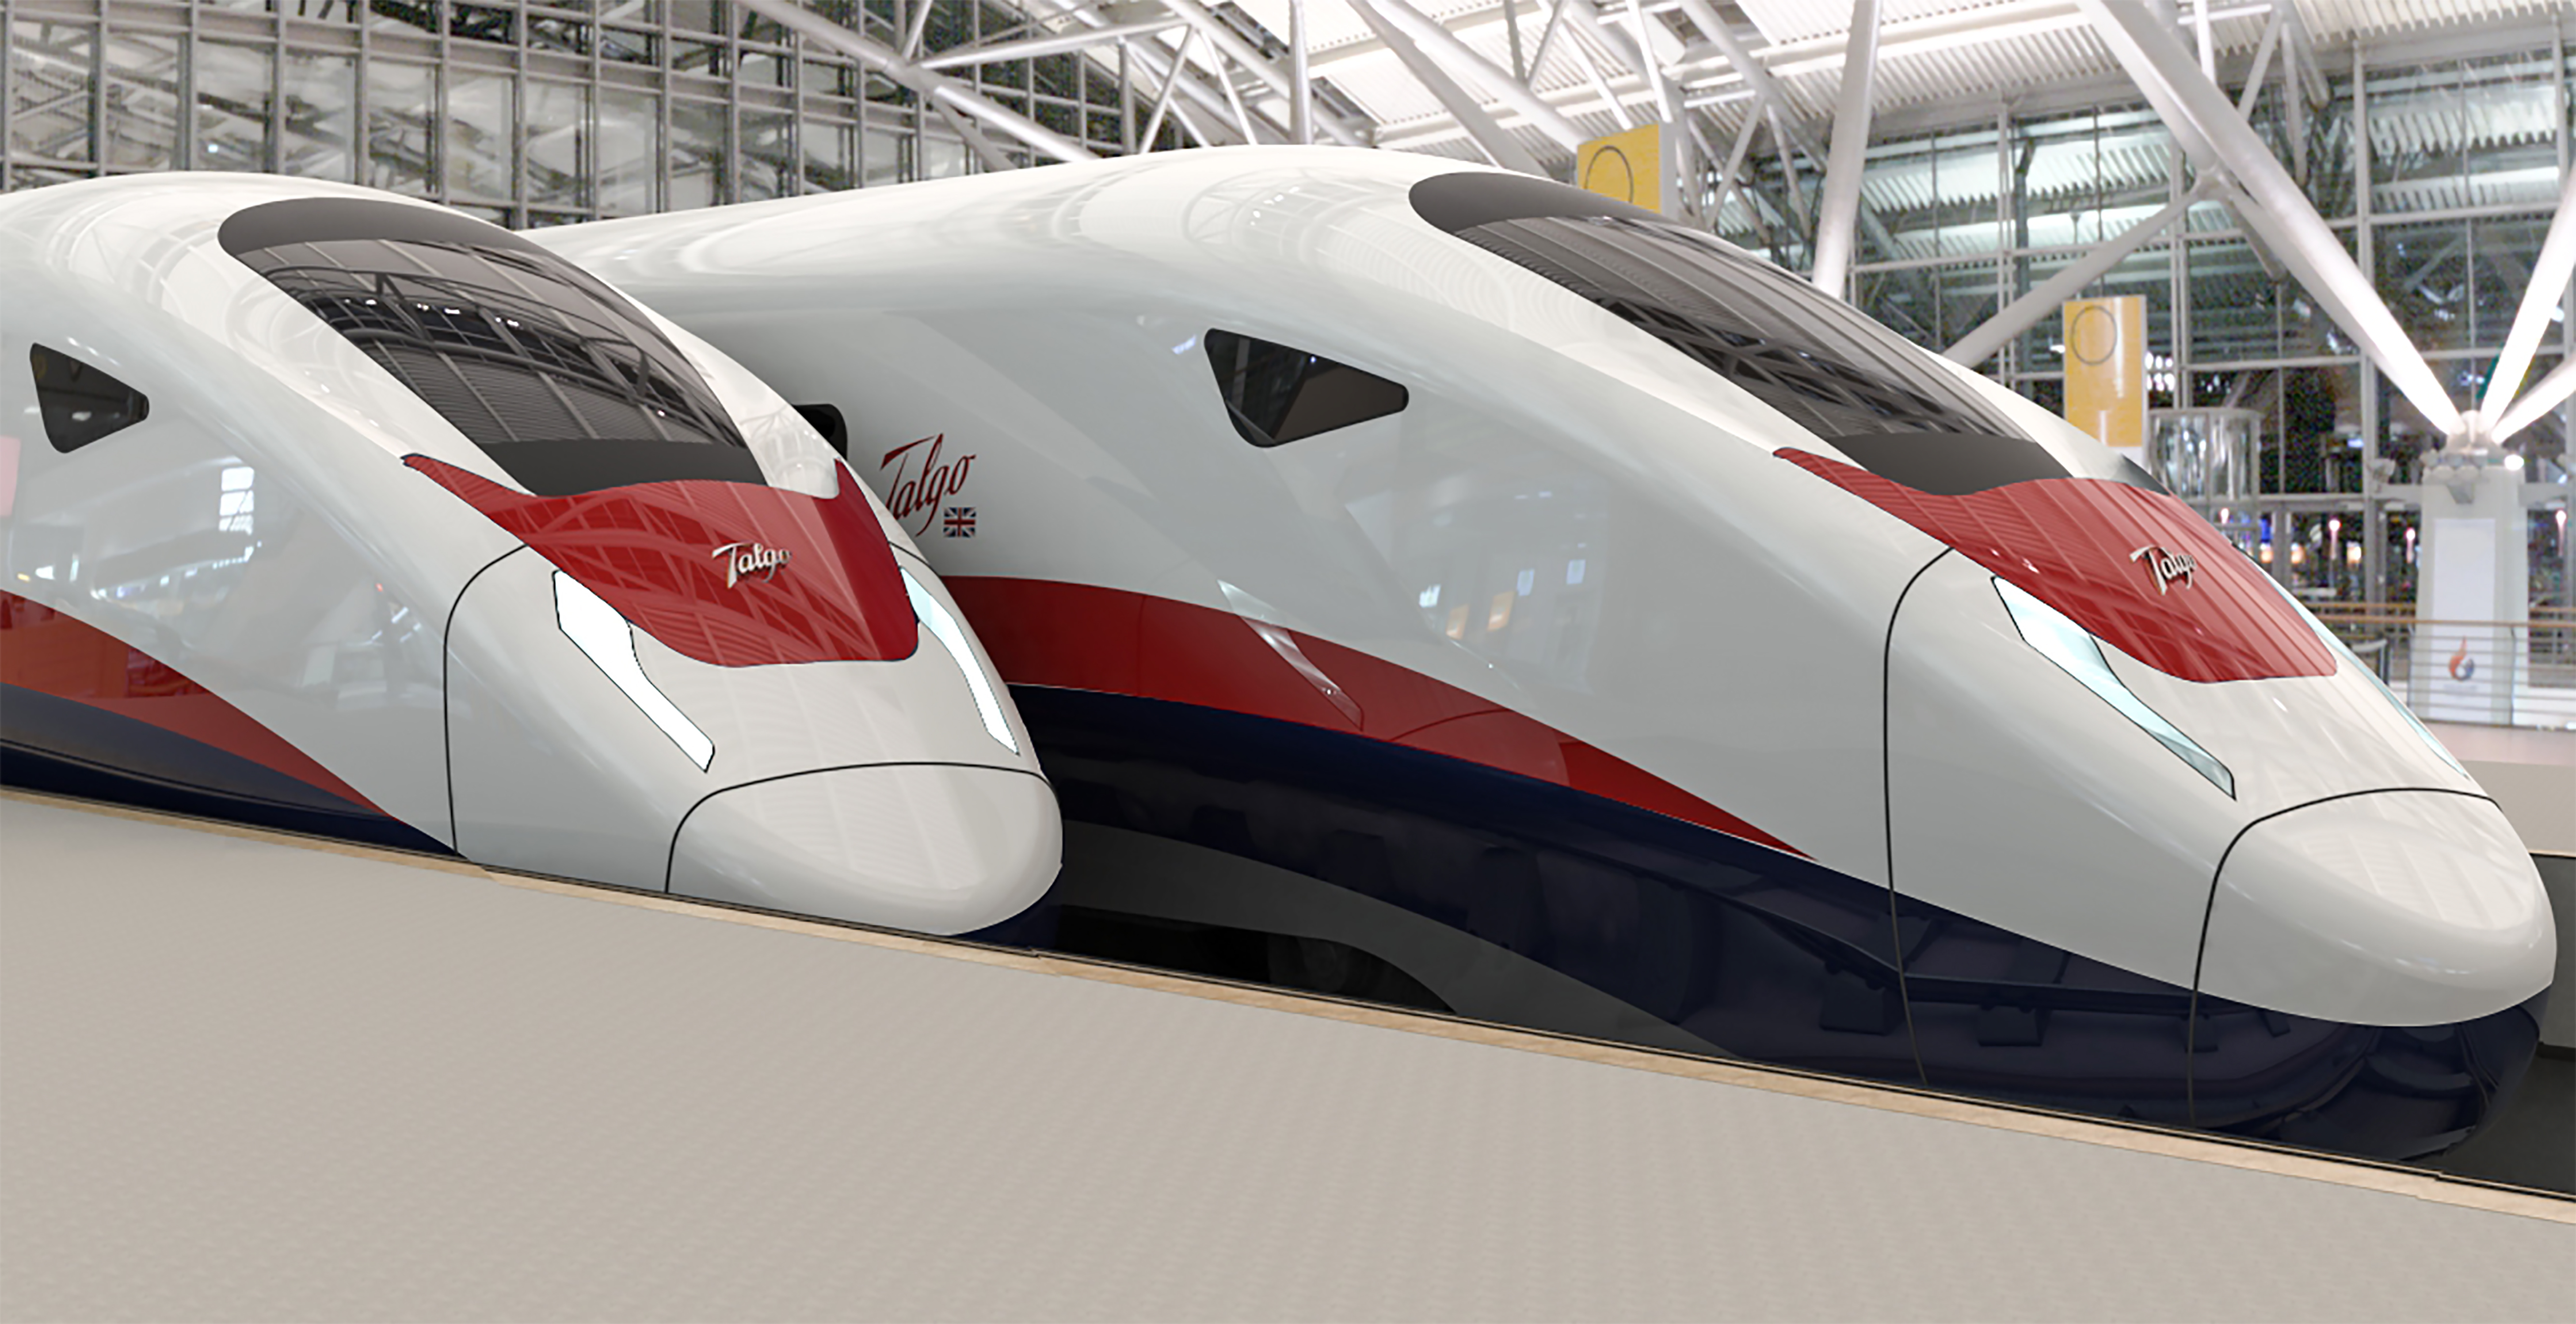 Some of the new trains being manufactured by Talgo.